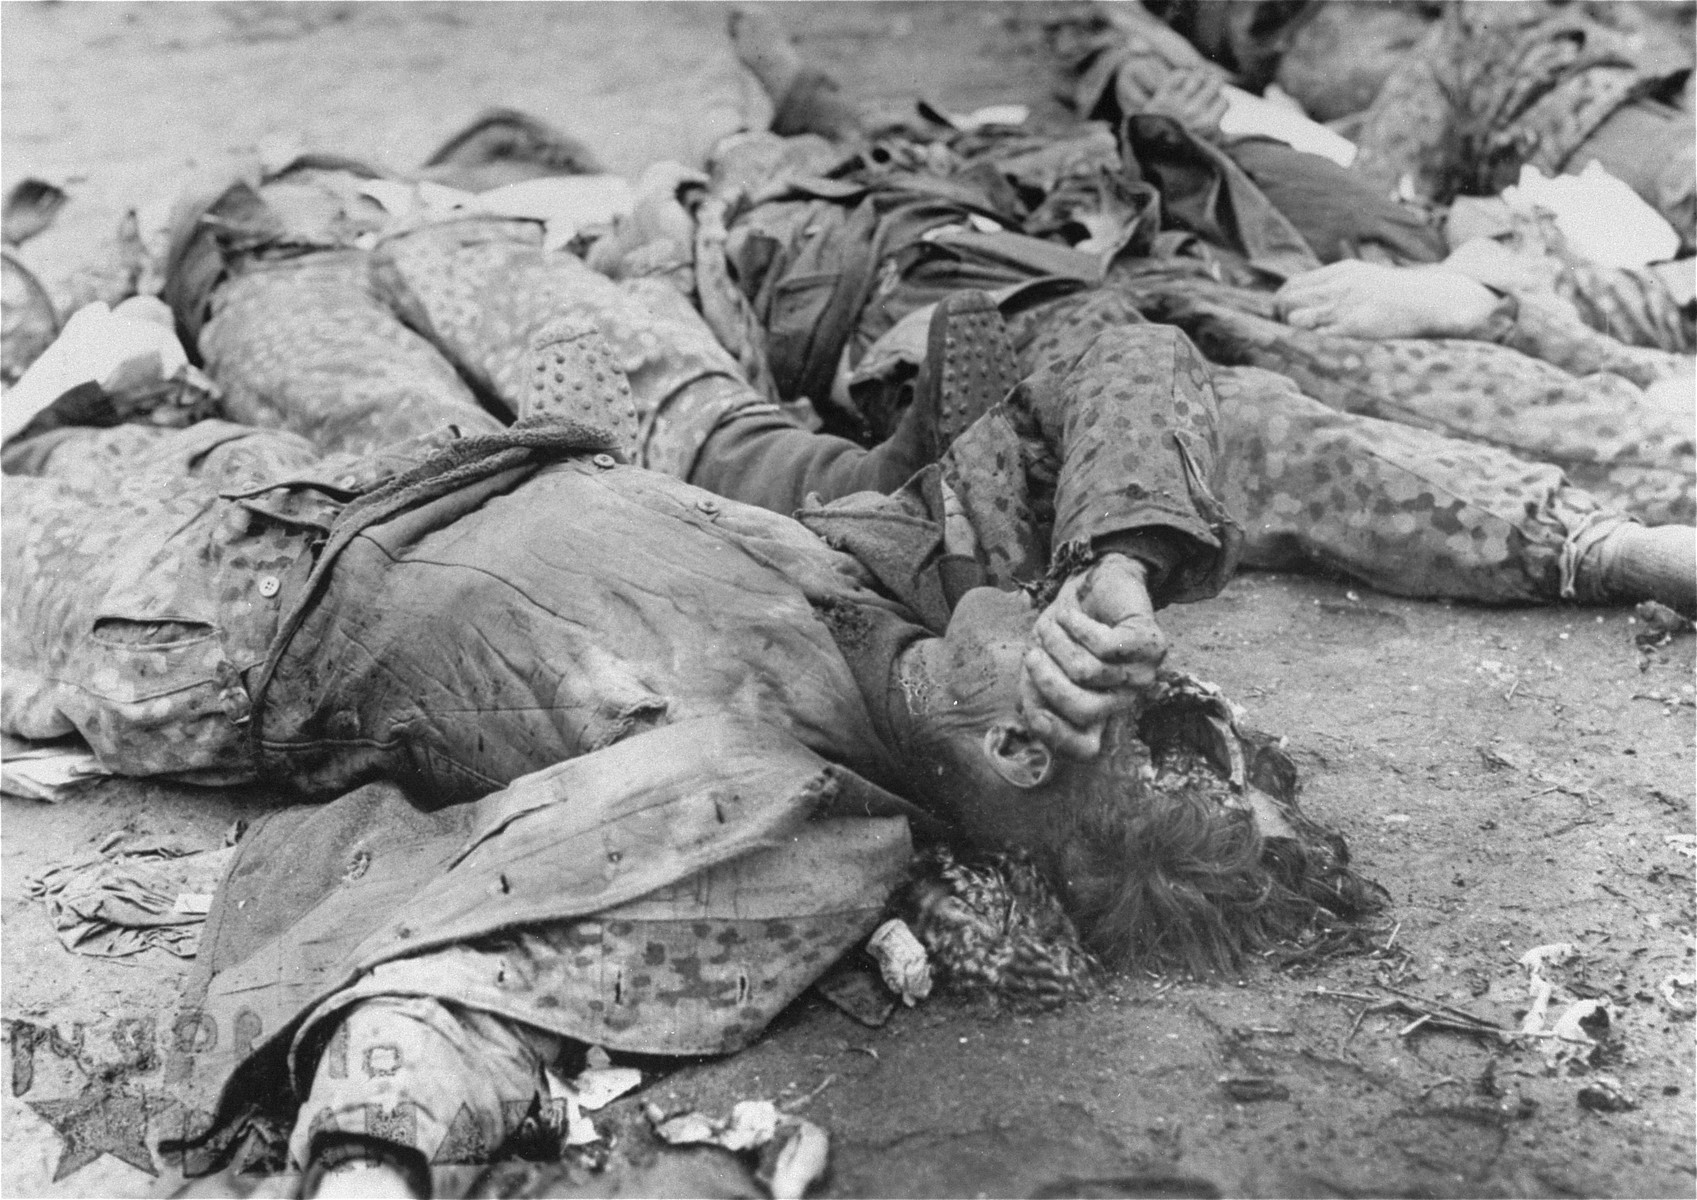 The bodies of SS guards who were summarily executed by U.S. troops.